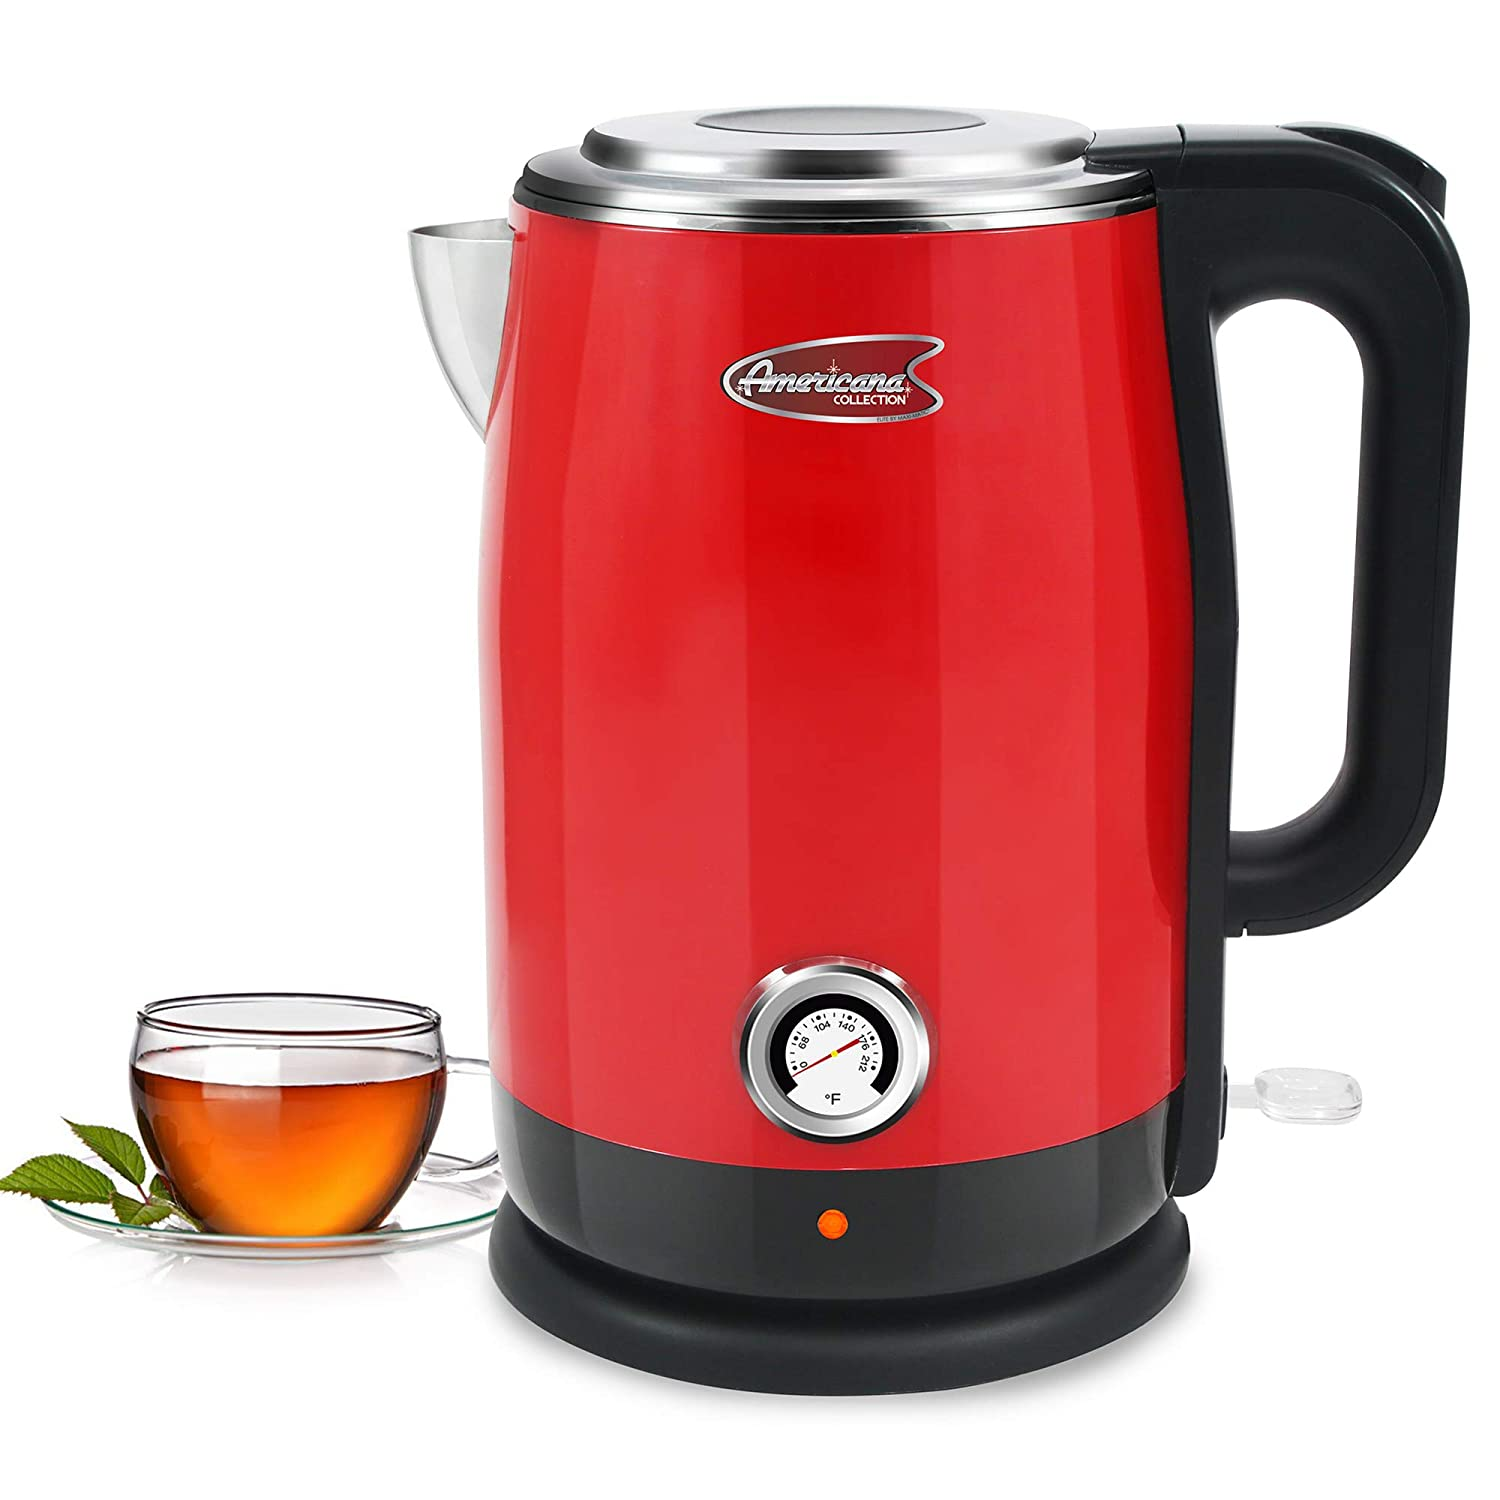 Maxi-Matic Americana by Elite EKT-1780R Double Wall Insulated Cool Touch Electric Water Tea Kettle with BPA Free Stainless Steel Interior and Auto Shut-Off, 1.7L, Red